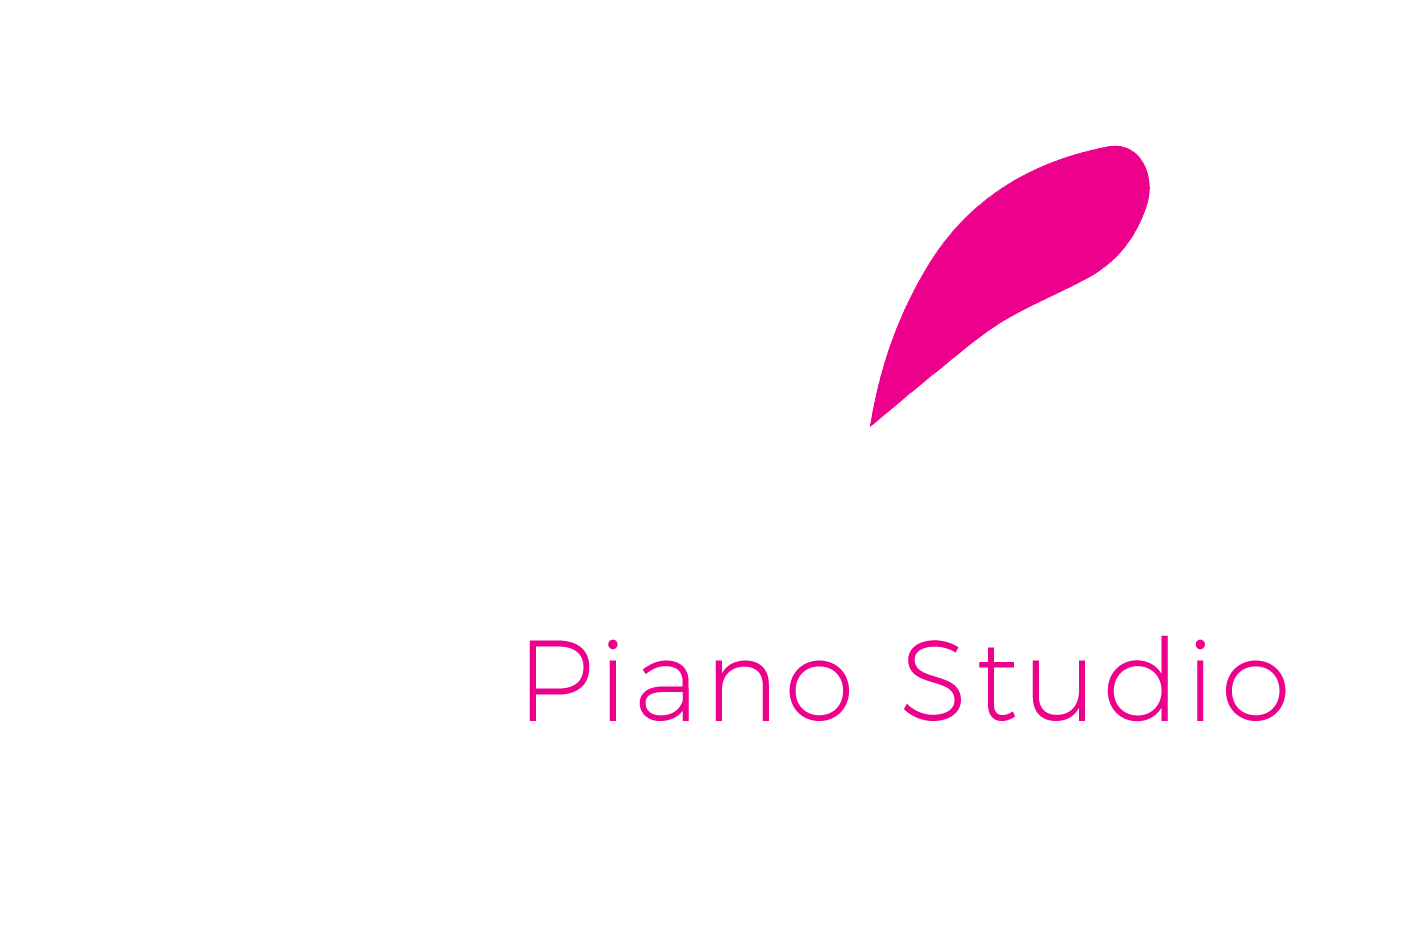 Piano lessons for kids & adults in Singapore - Adeline Yeo Piano Studio White Logo